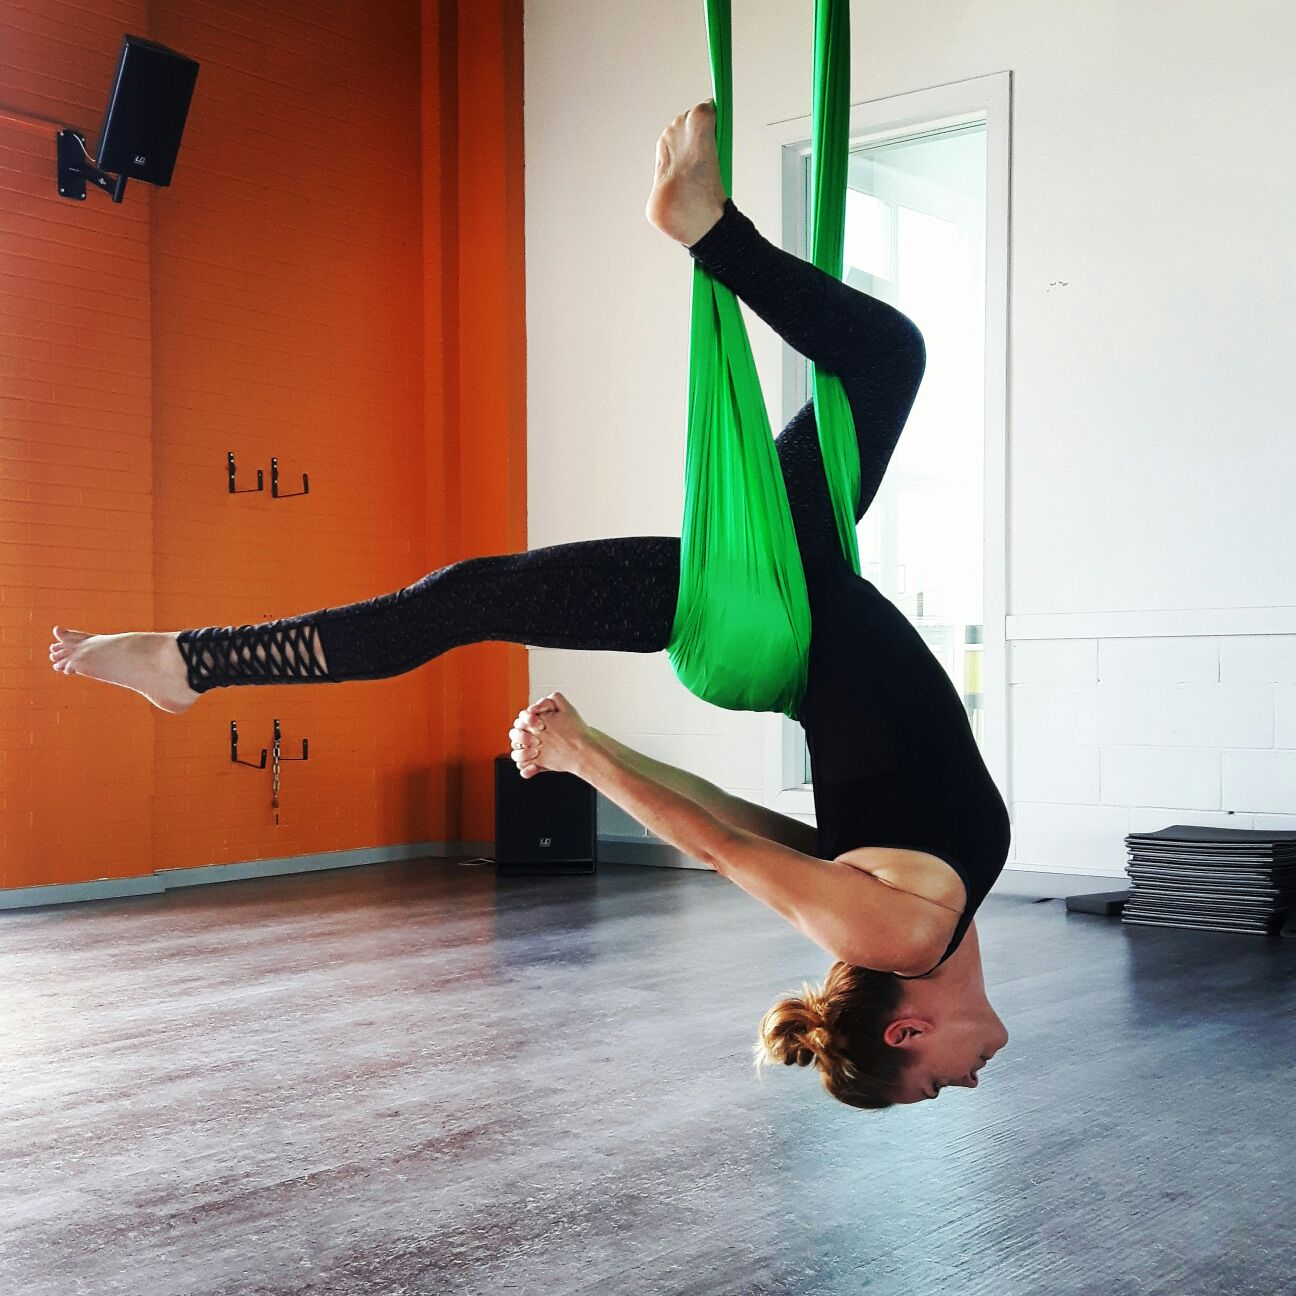 teacher hammock room training img yoga the pole play aerial event